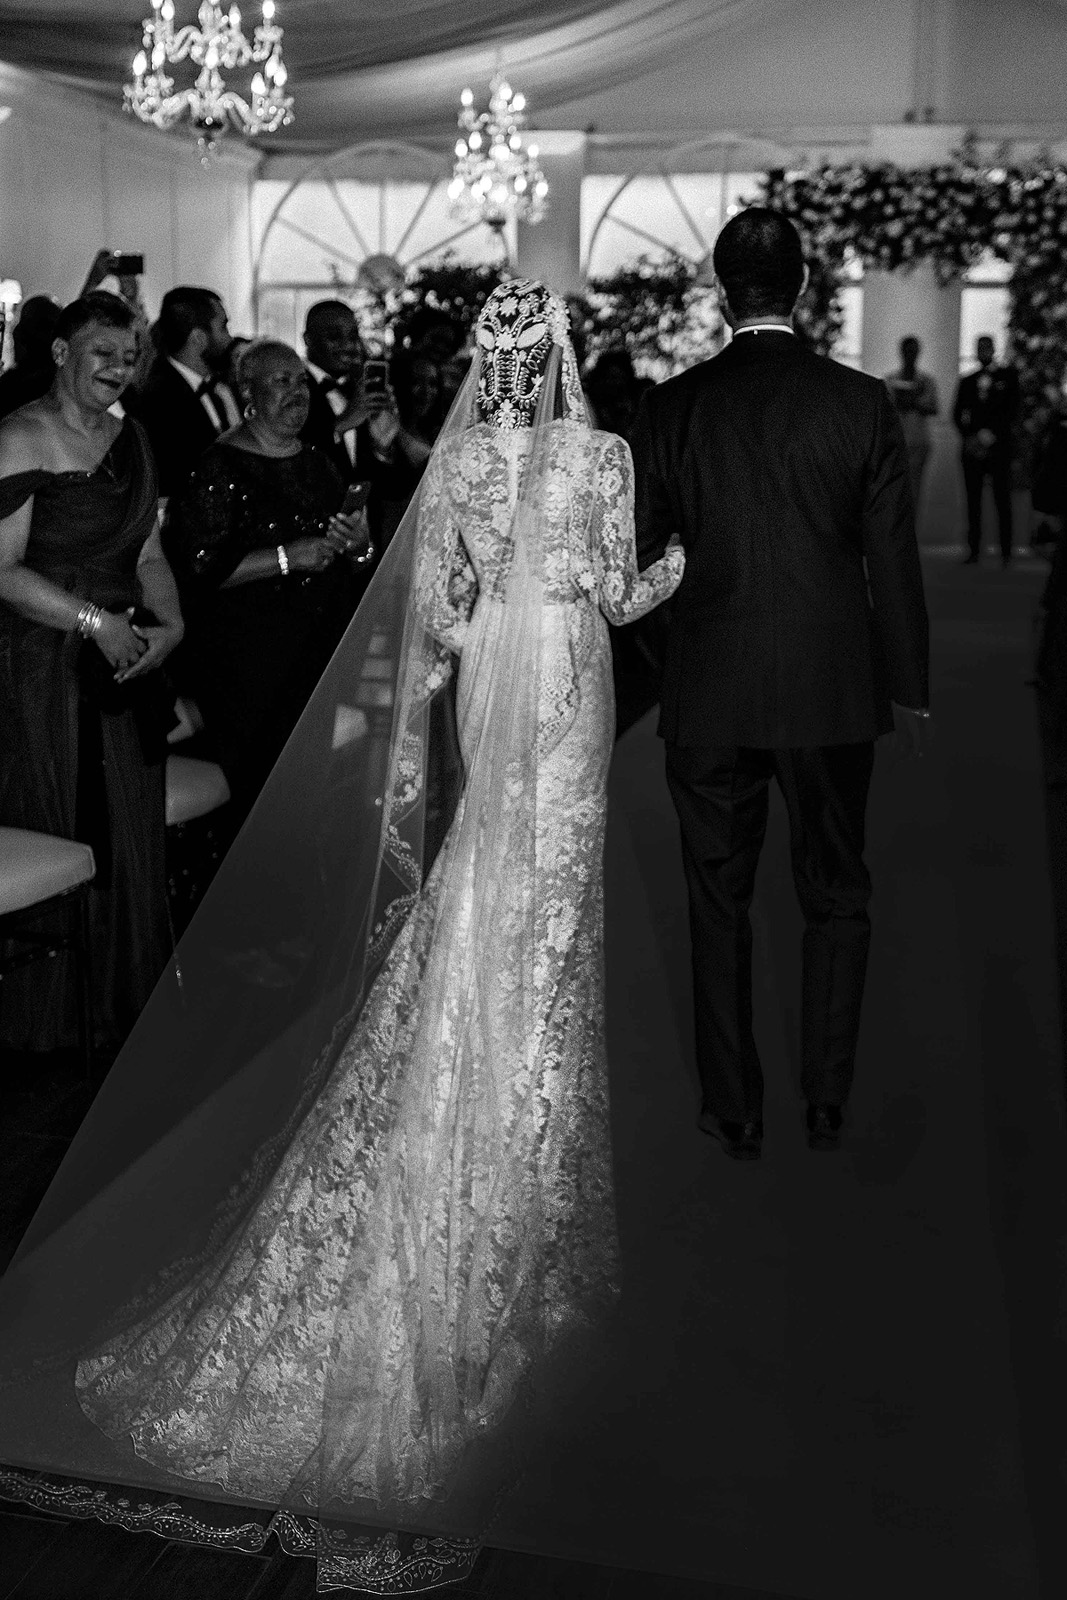 bride walking down aisle in long lace veil